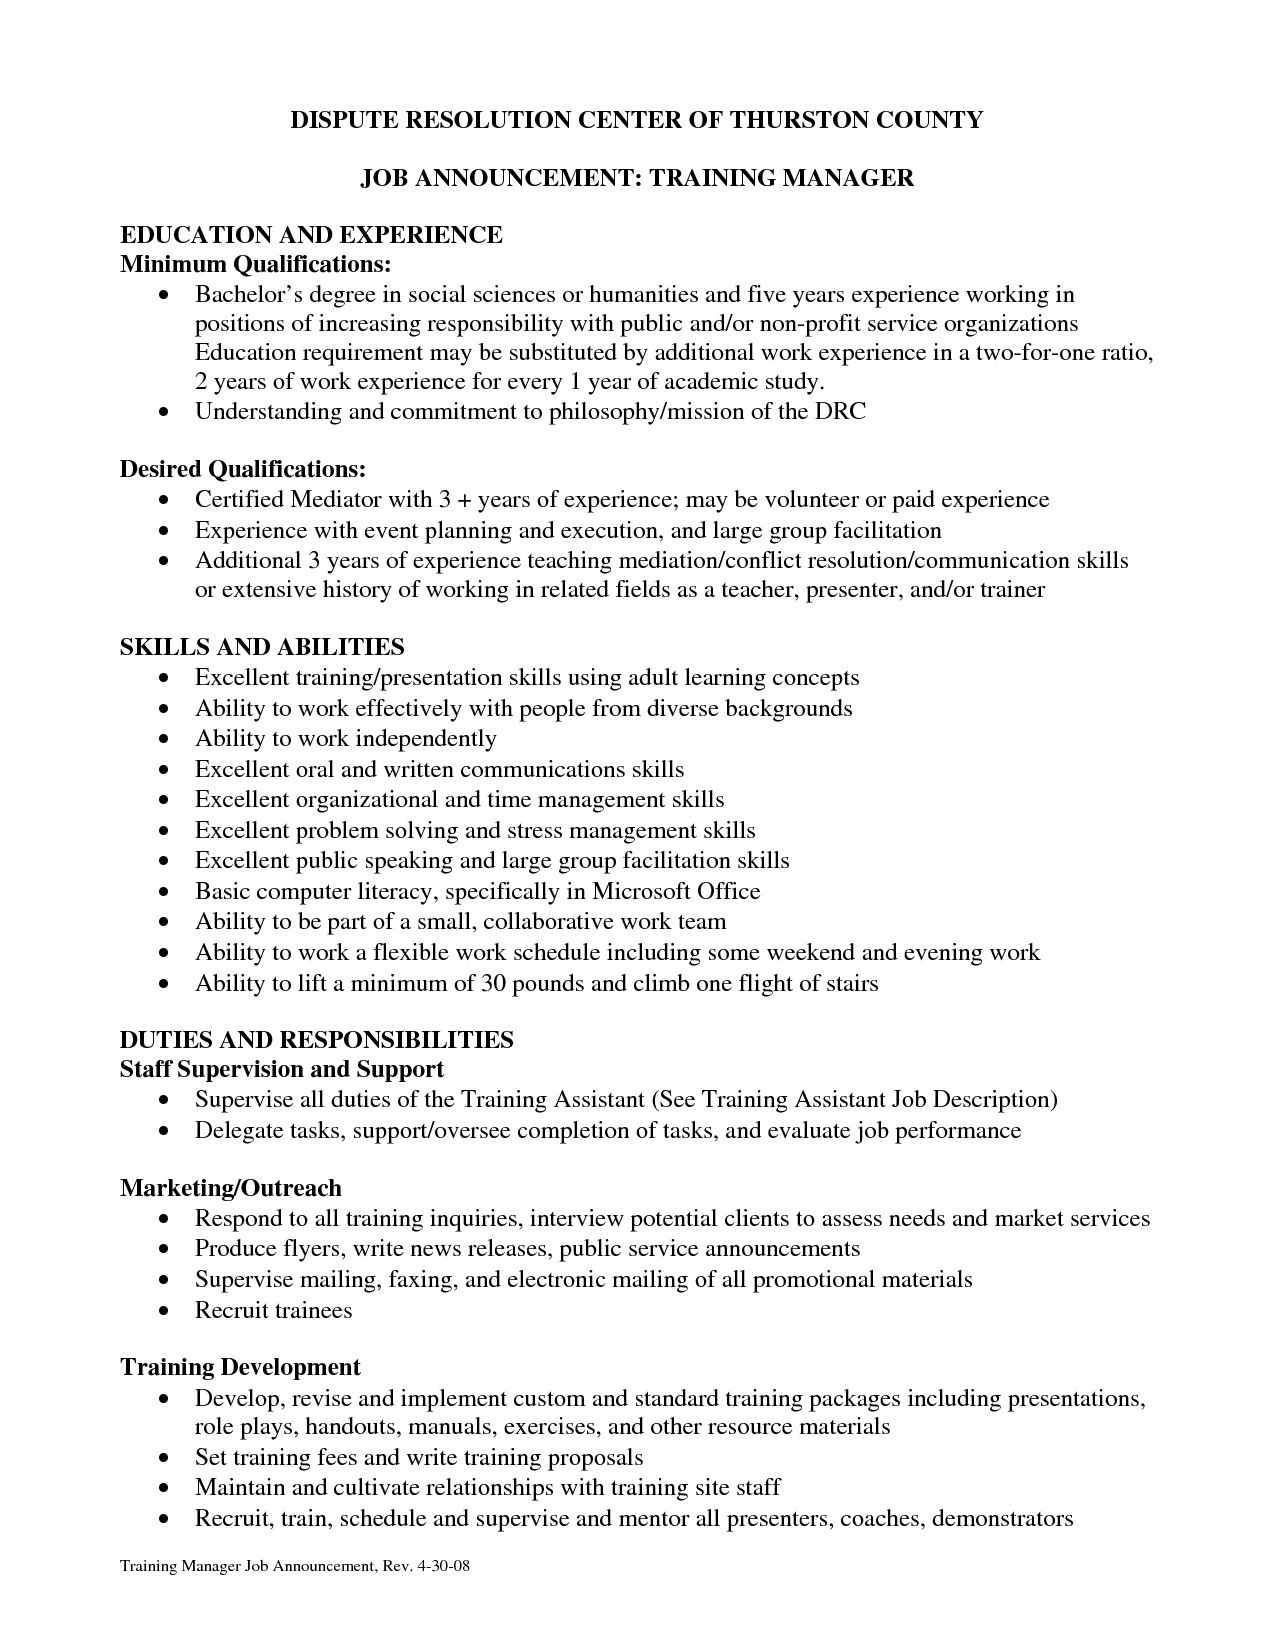 Training Coordinator Resume Cover Letter - Training Coordinator ...